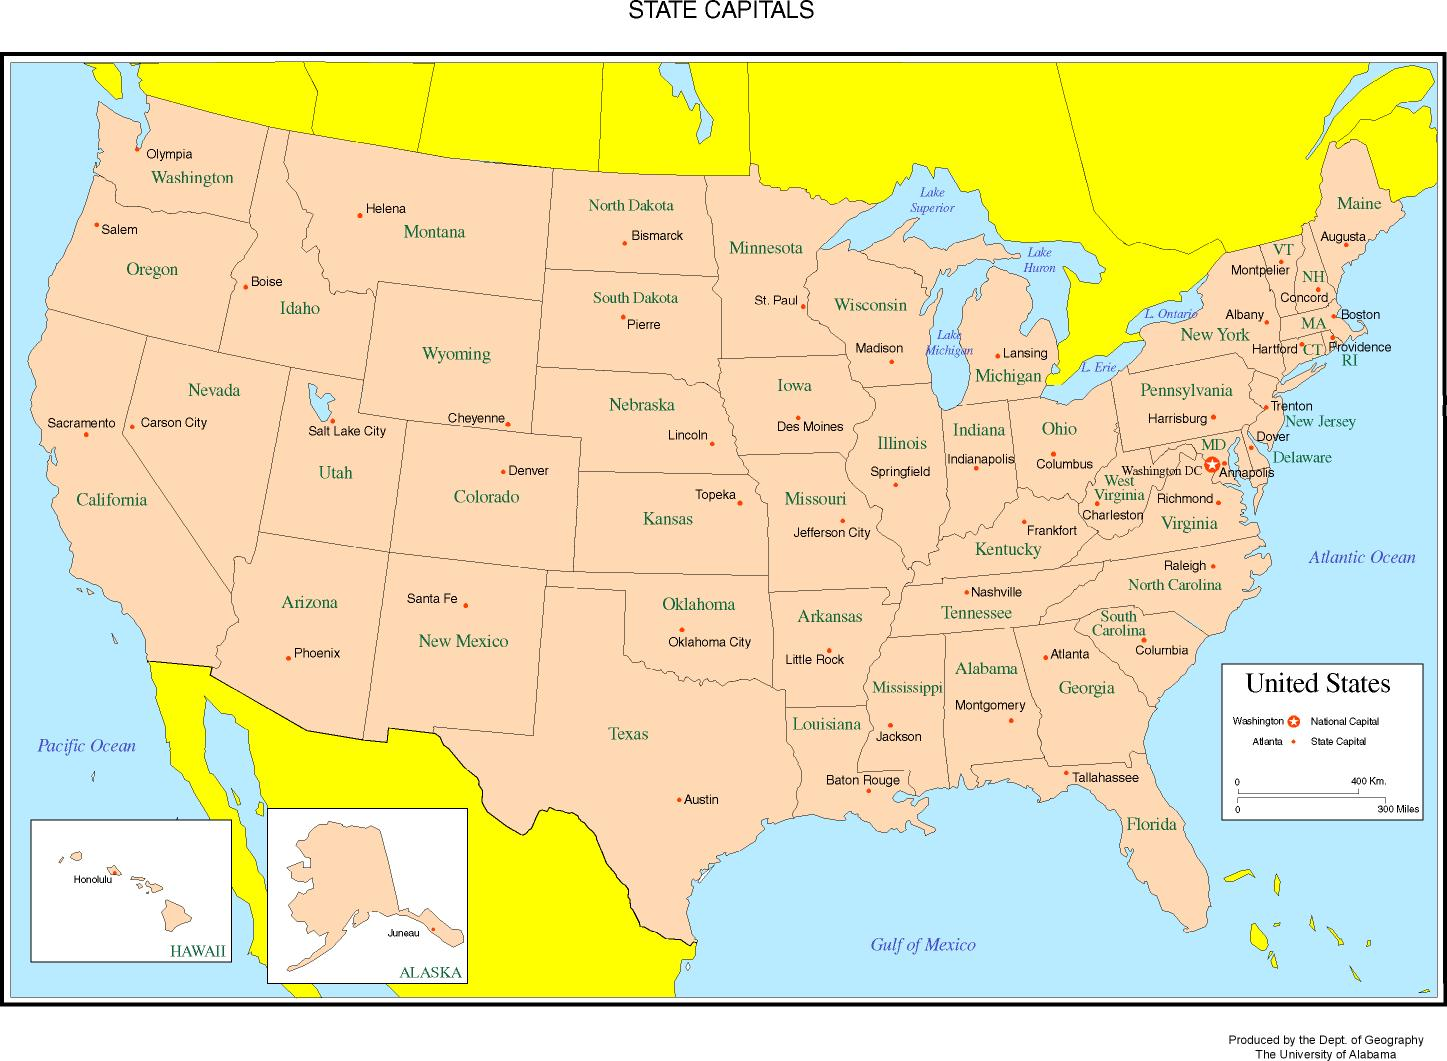 Clipart United States Map With Capitals And State Names FileMap - A us map with states and capitals